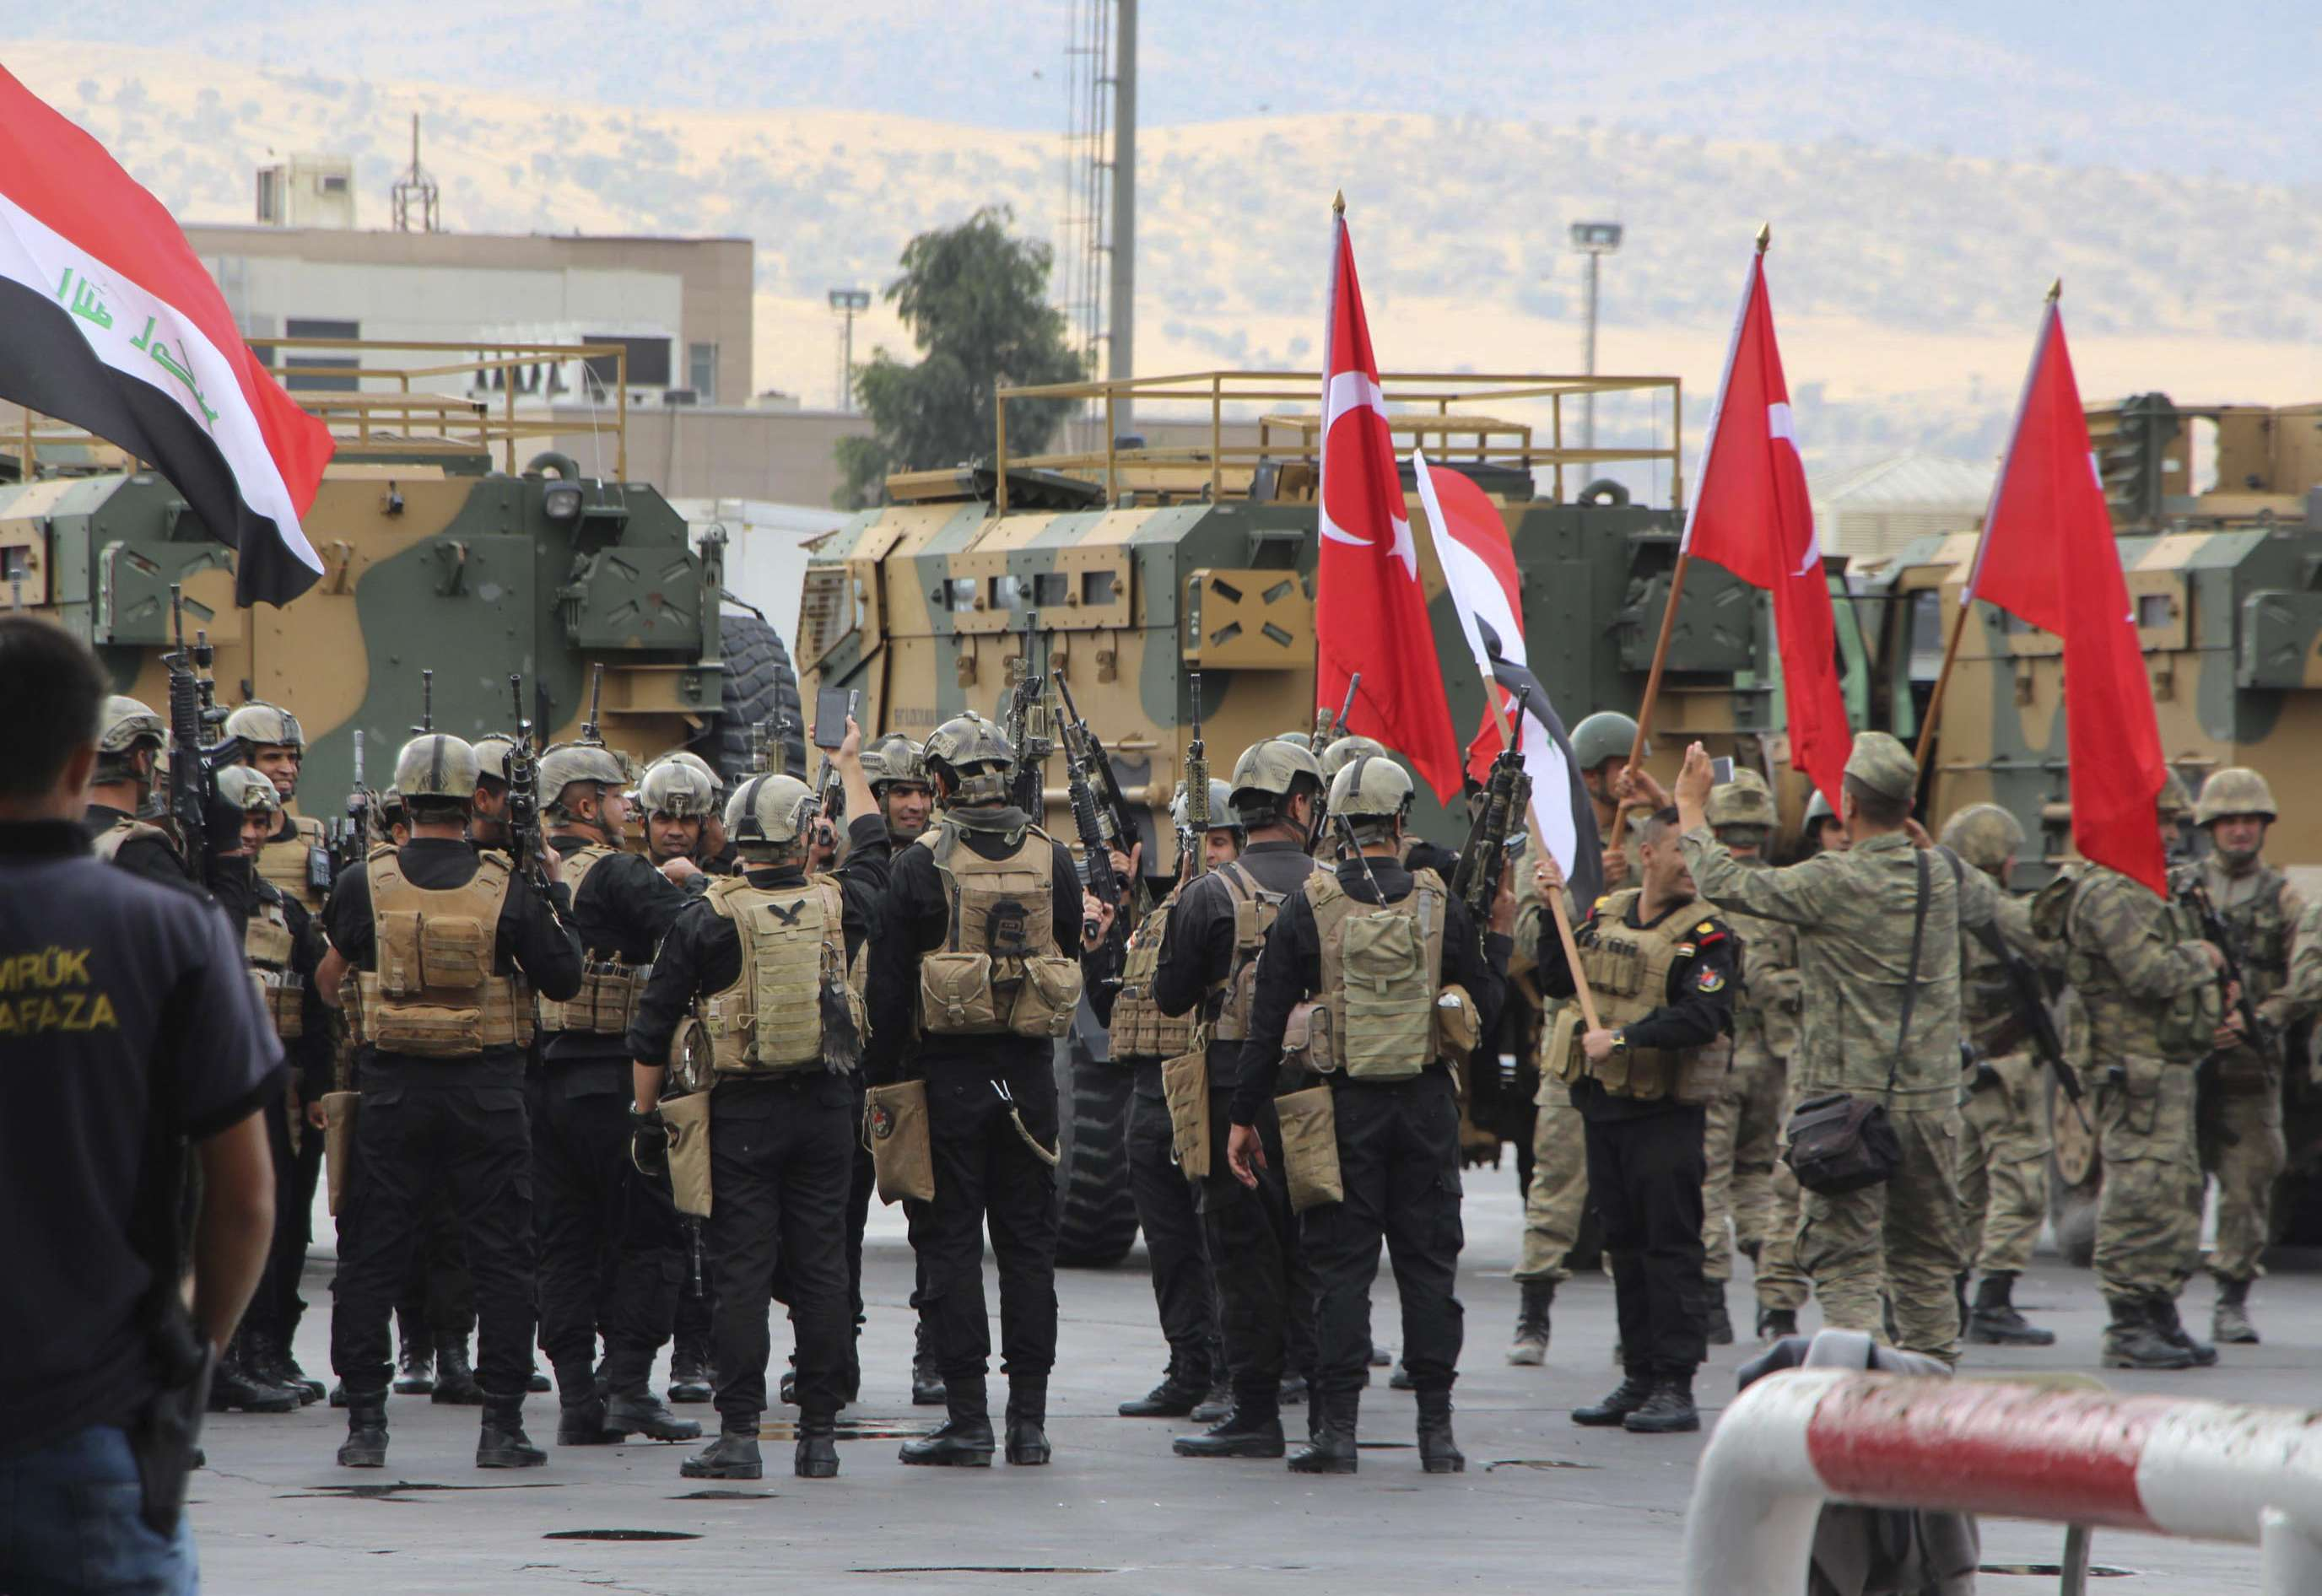 Gathering steam. Turkish and Iraqi troops, some holding their national flags, participate in a ceremony at the Habur-Ibrahim Khalil border crossing with Iraq near Silopi in south-eastern Turkey, last October. (AP)